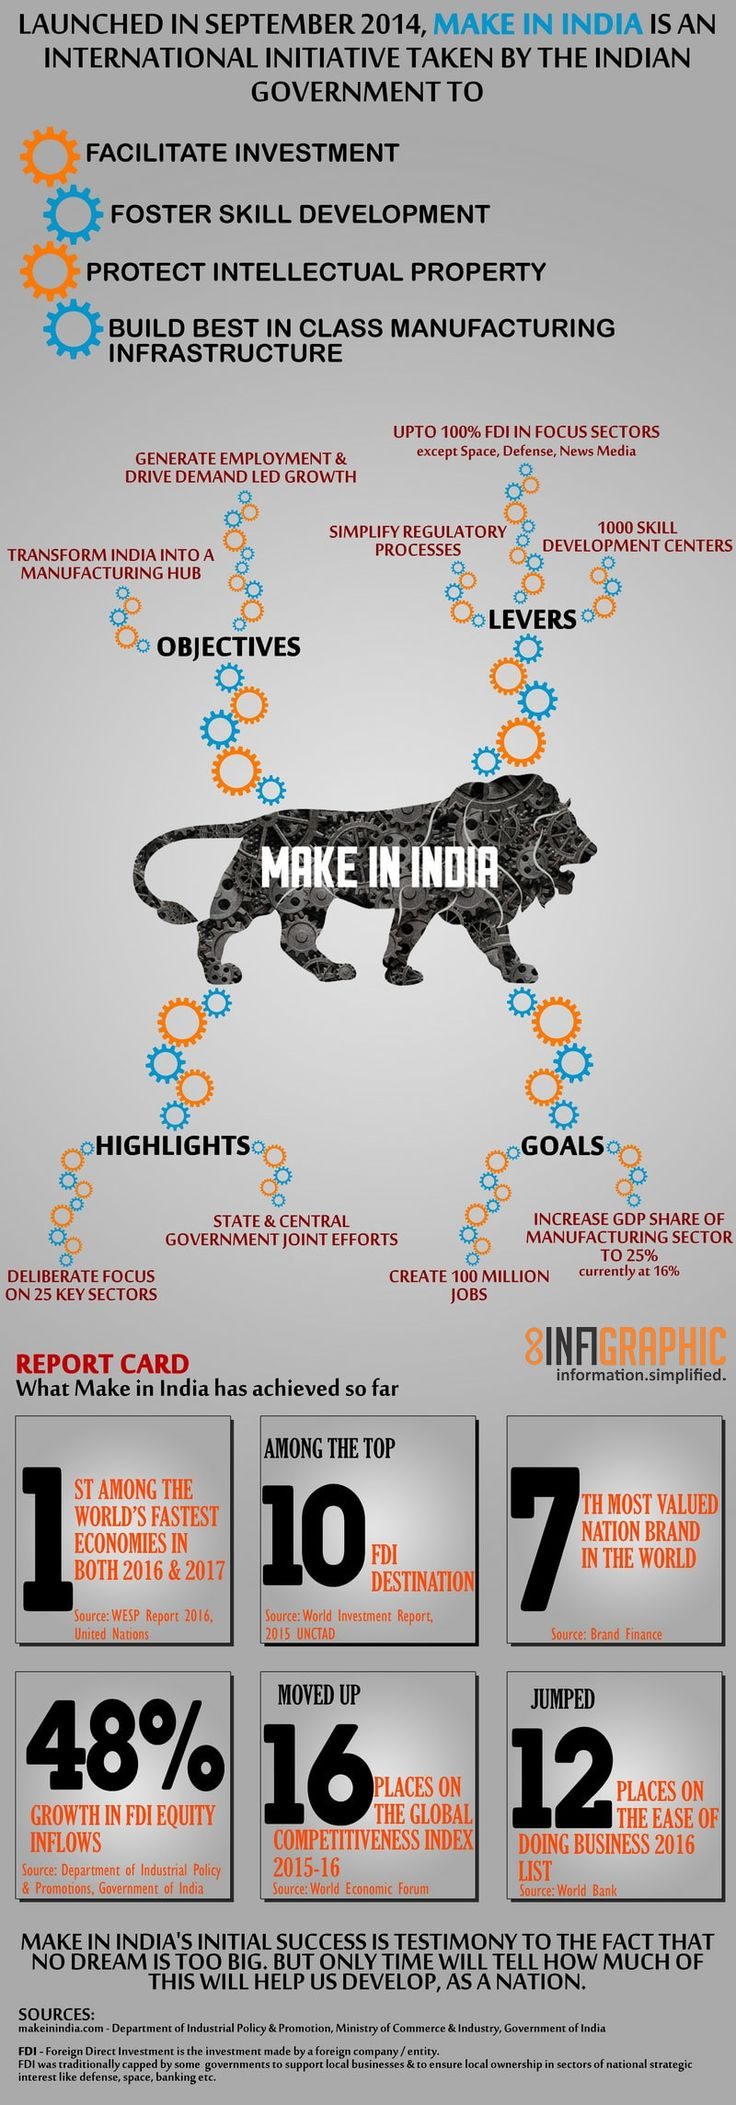 If you have somehowmissed the waveof Modi's Make in India initiative so far, this 1-minute infographic will tell you all you need to know about it. Make in India was launched in September 2014 as part of a wider set of nation building initiatives and is beginning to show initial signs of success. Read on for more..